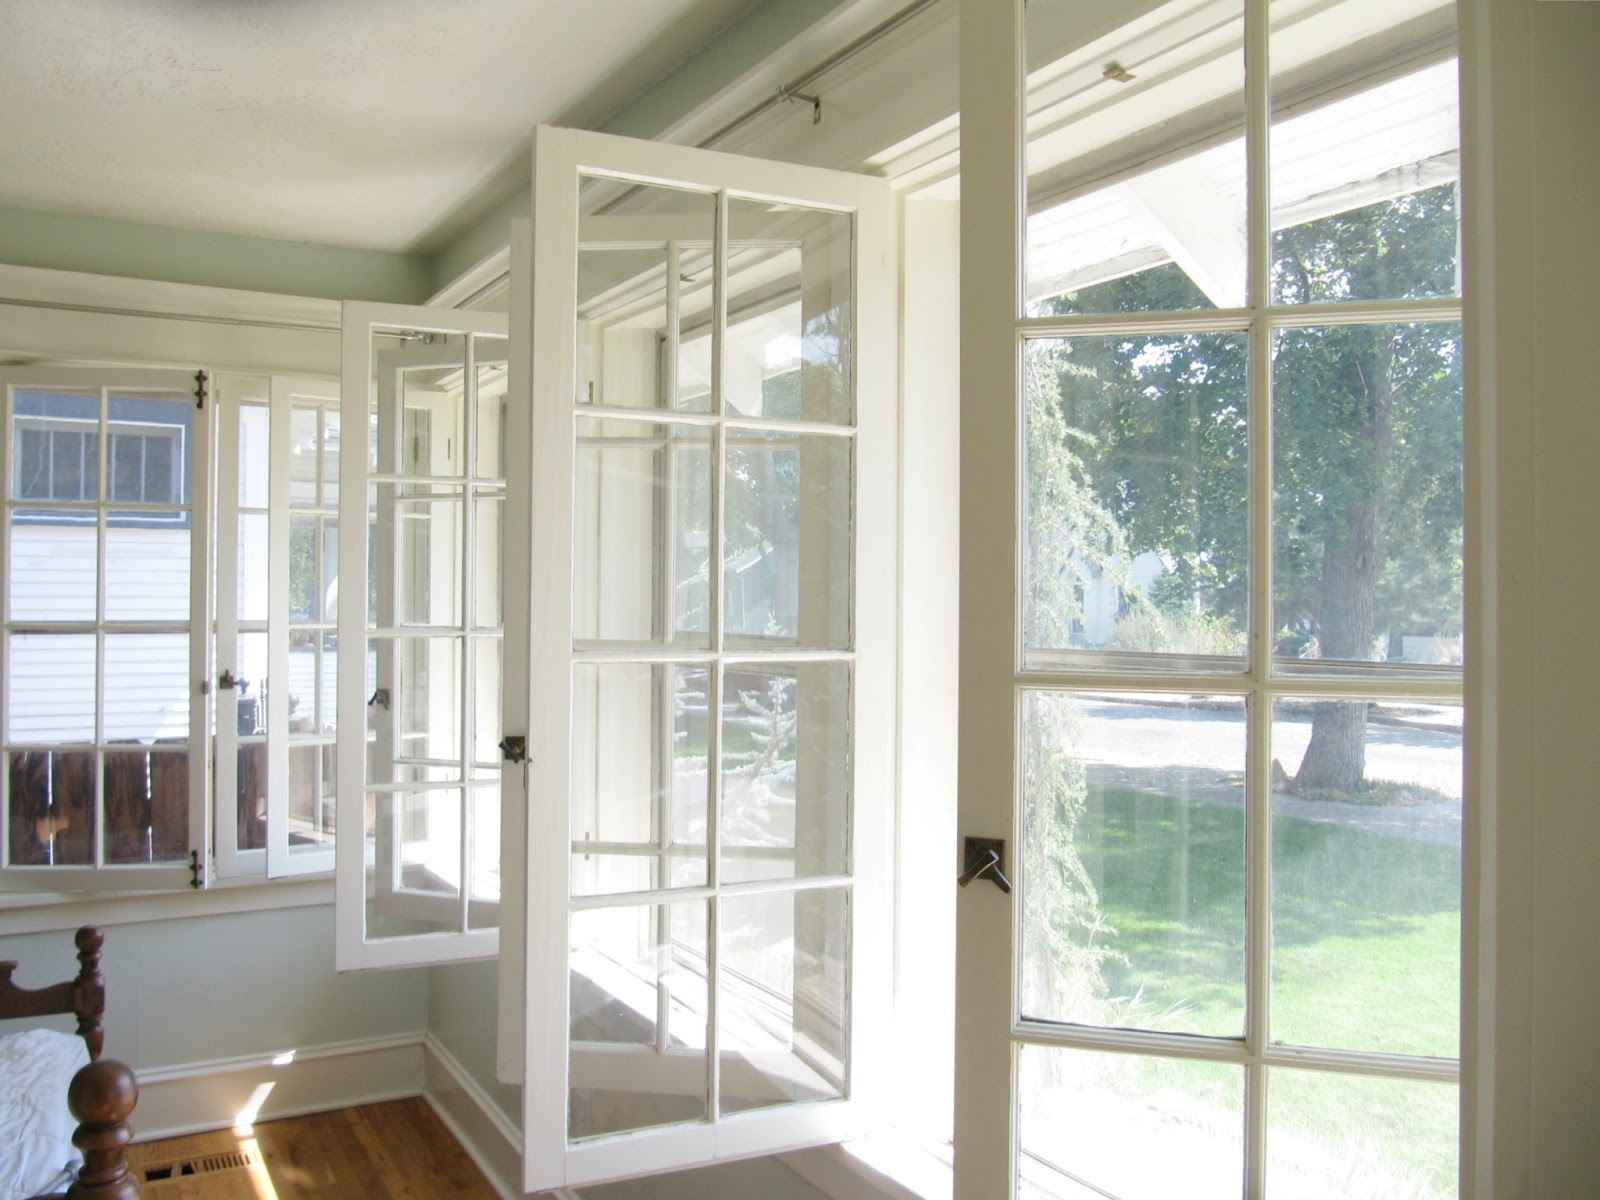 How to clean house windows - How To Clean House Windows 58